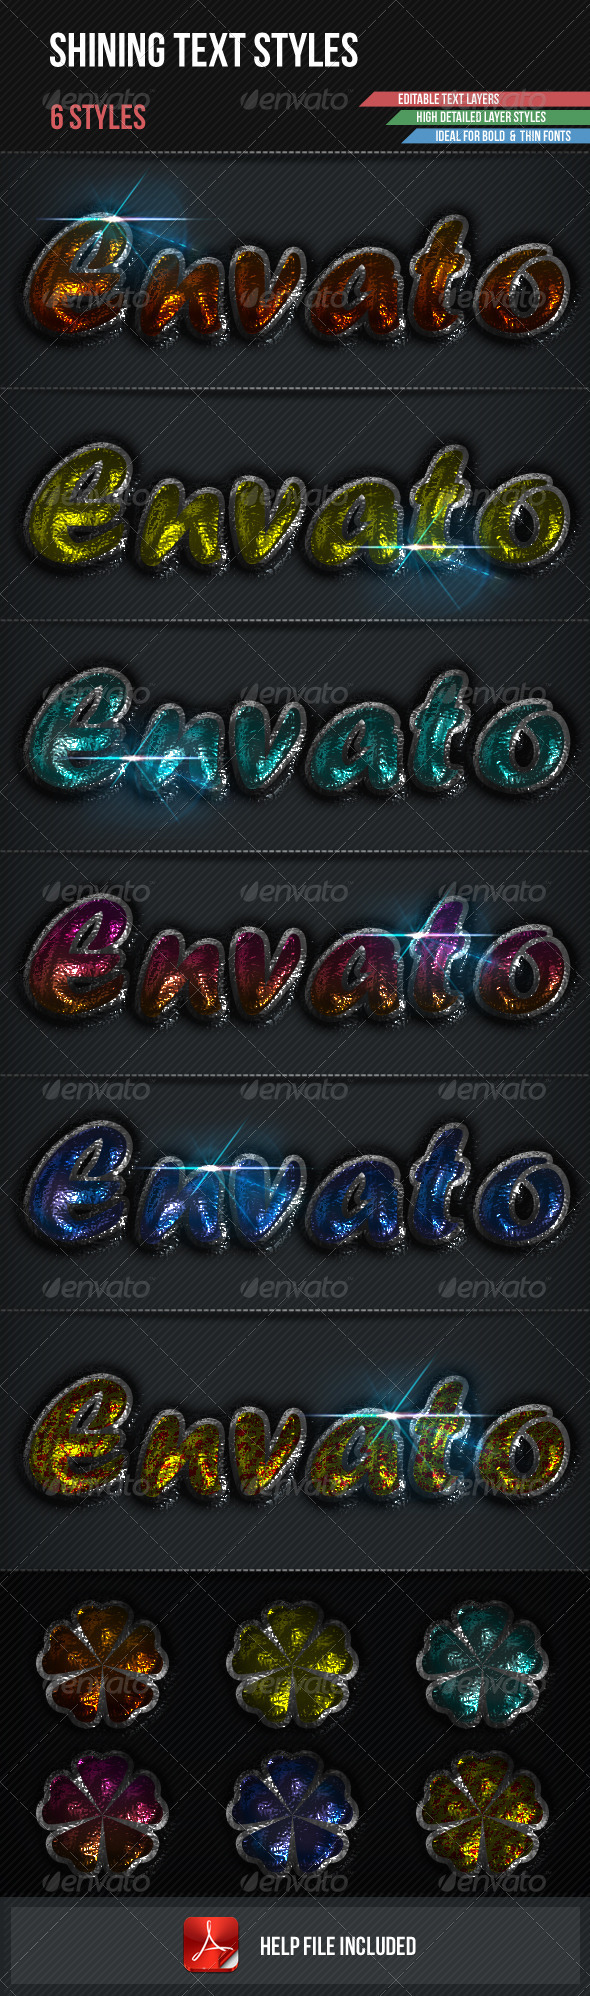 GraphicRiver Shining Text Styles 3350985